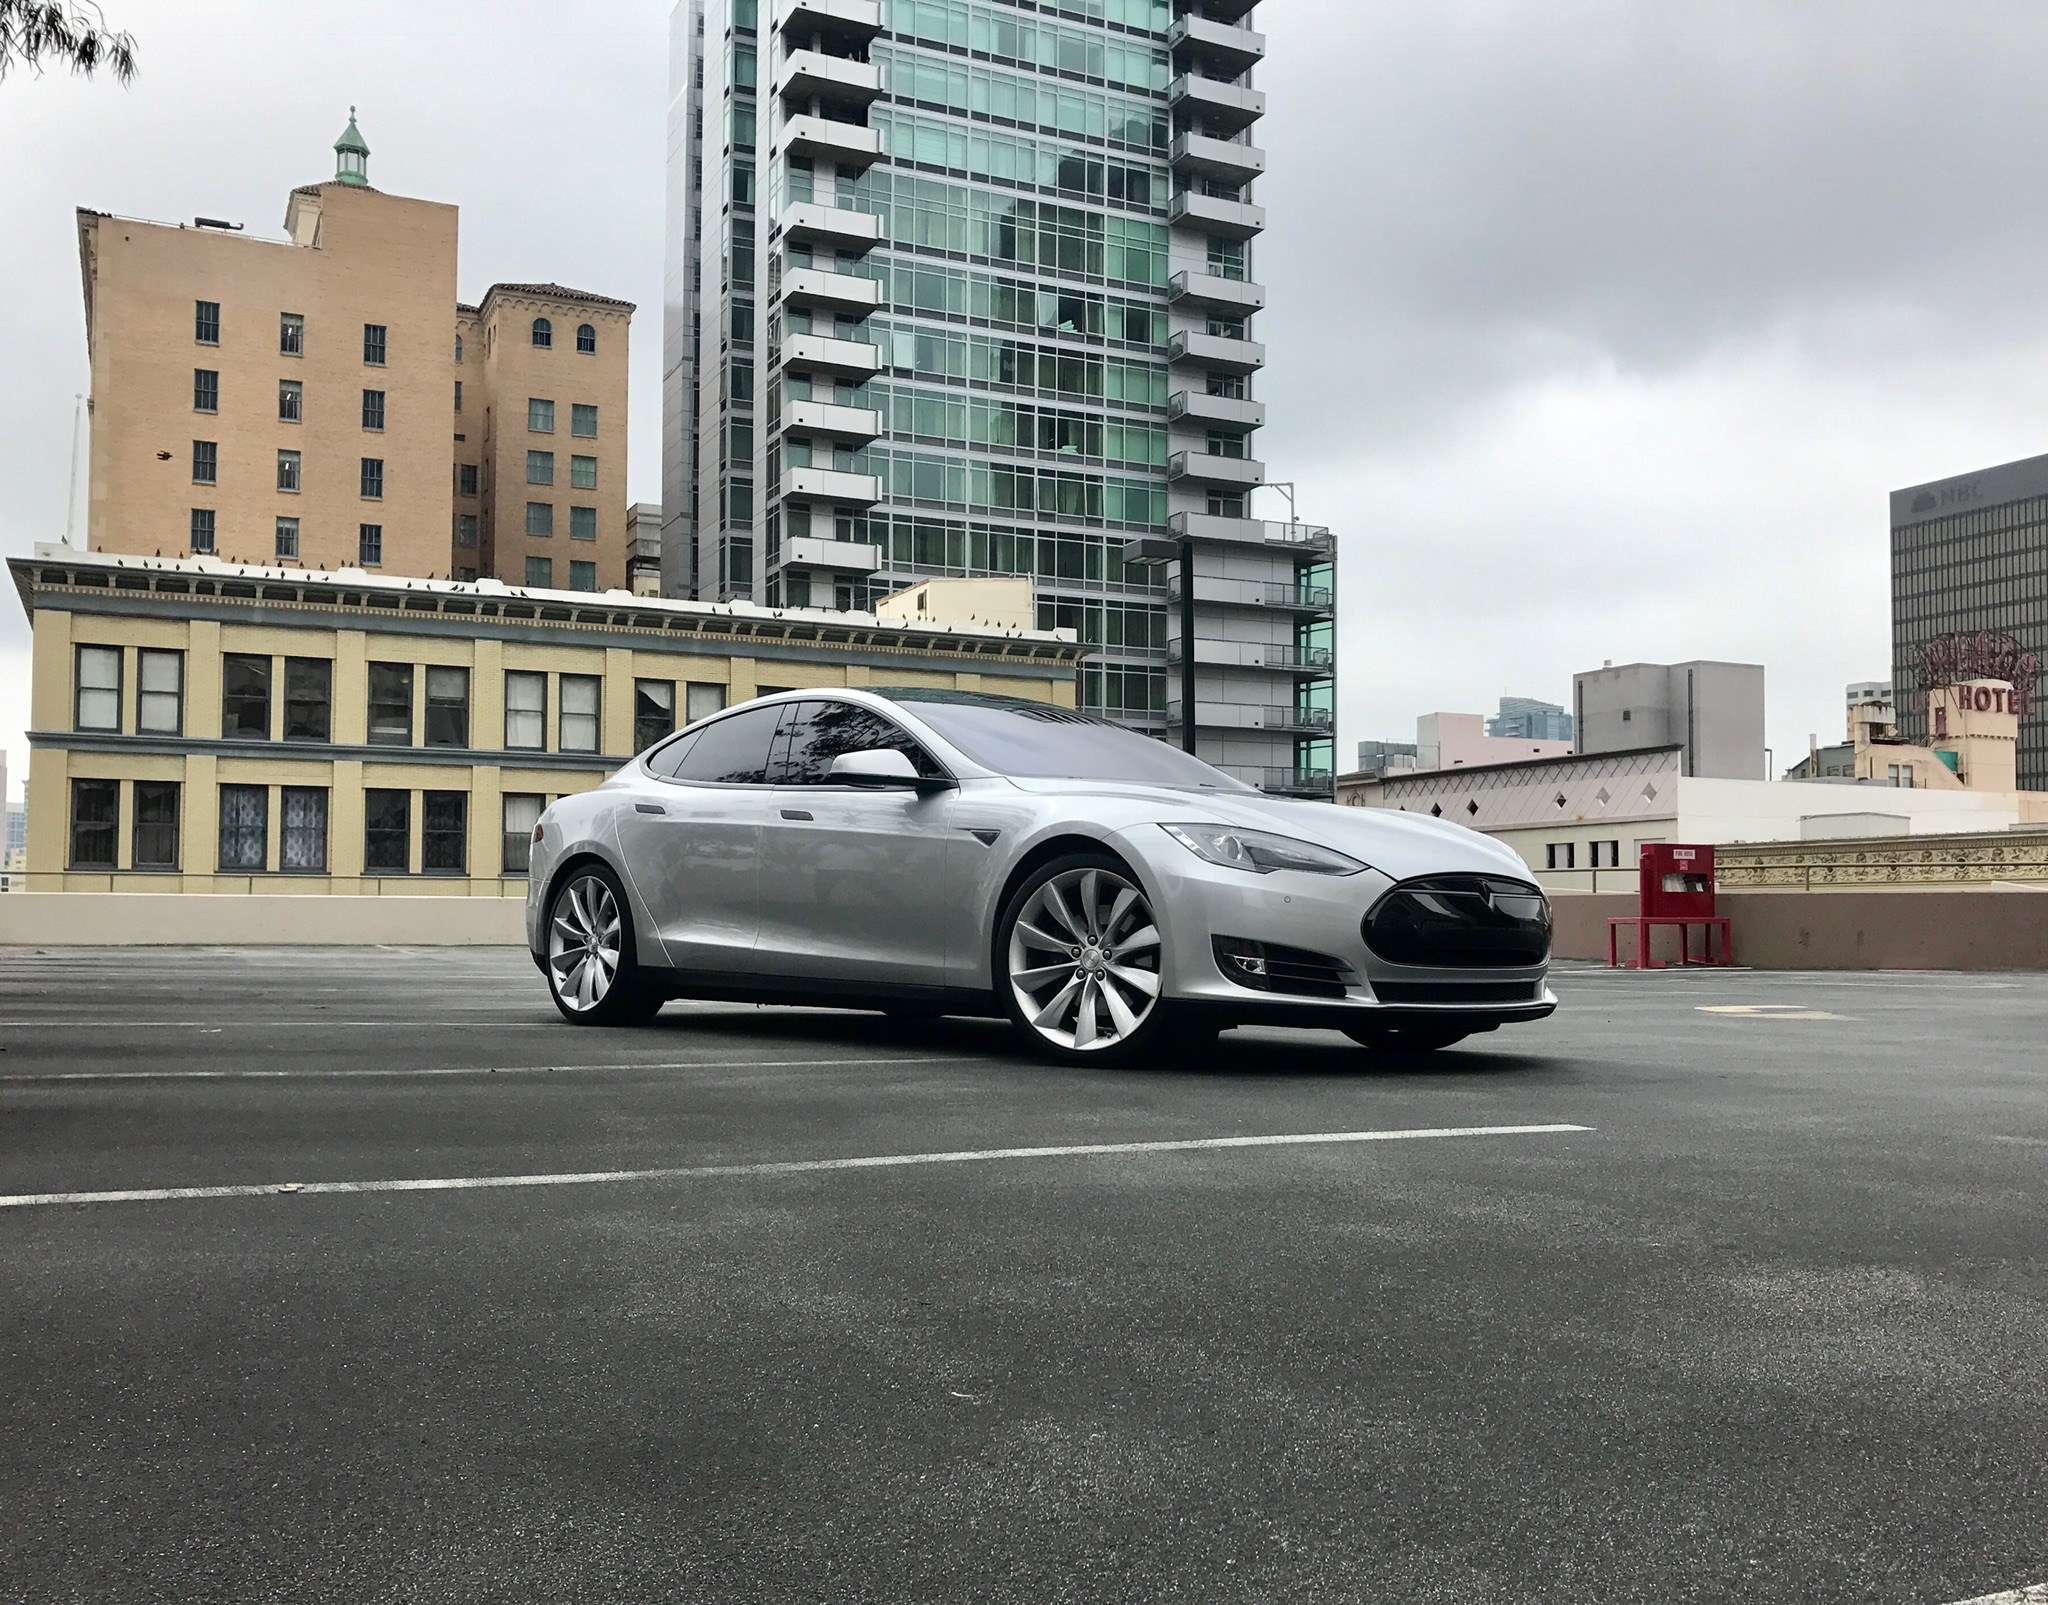 Getting Closer to Getting a Tesla